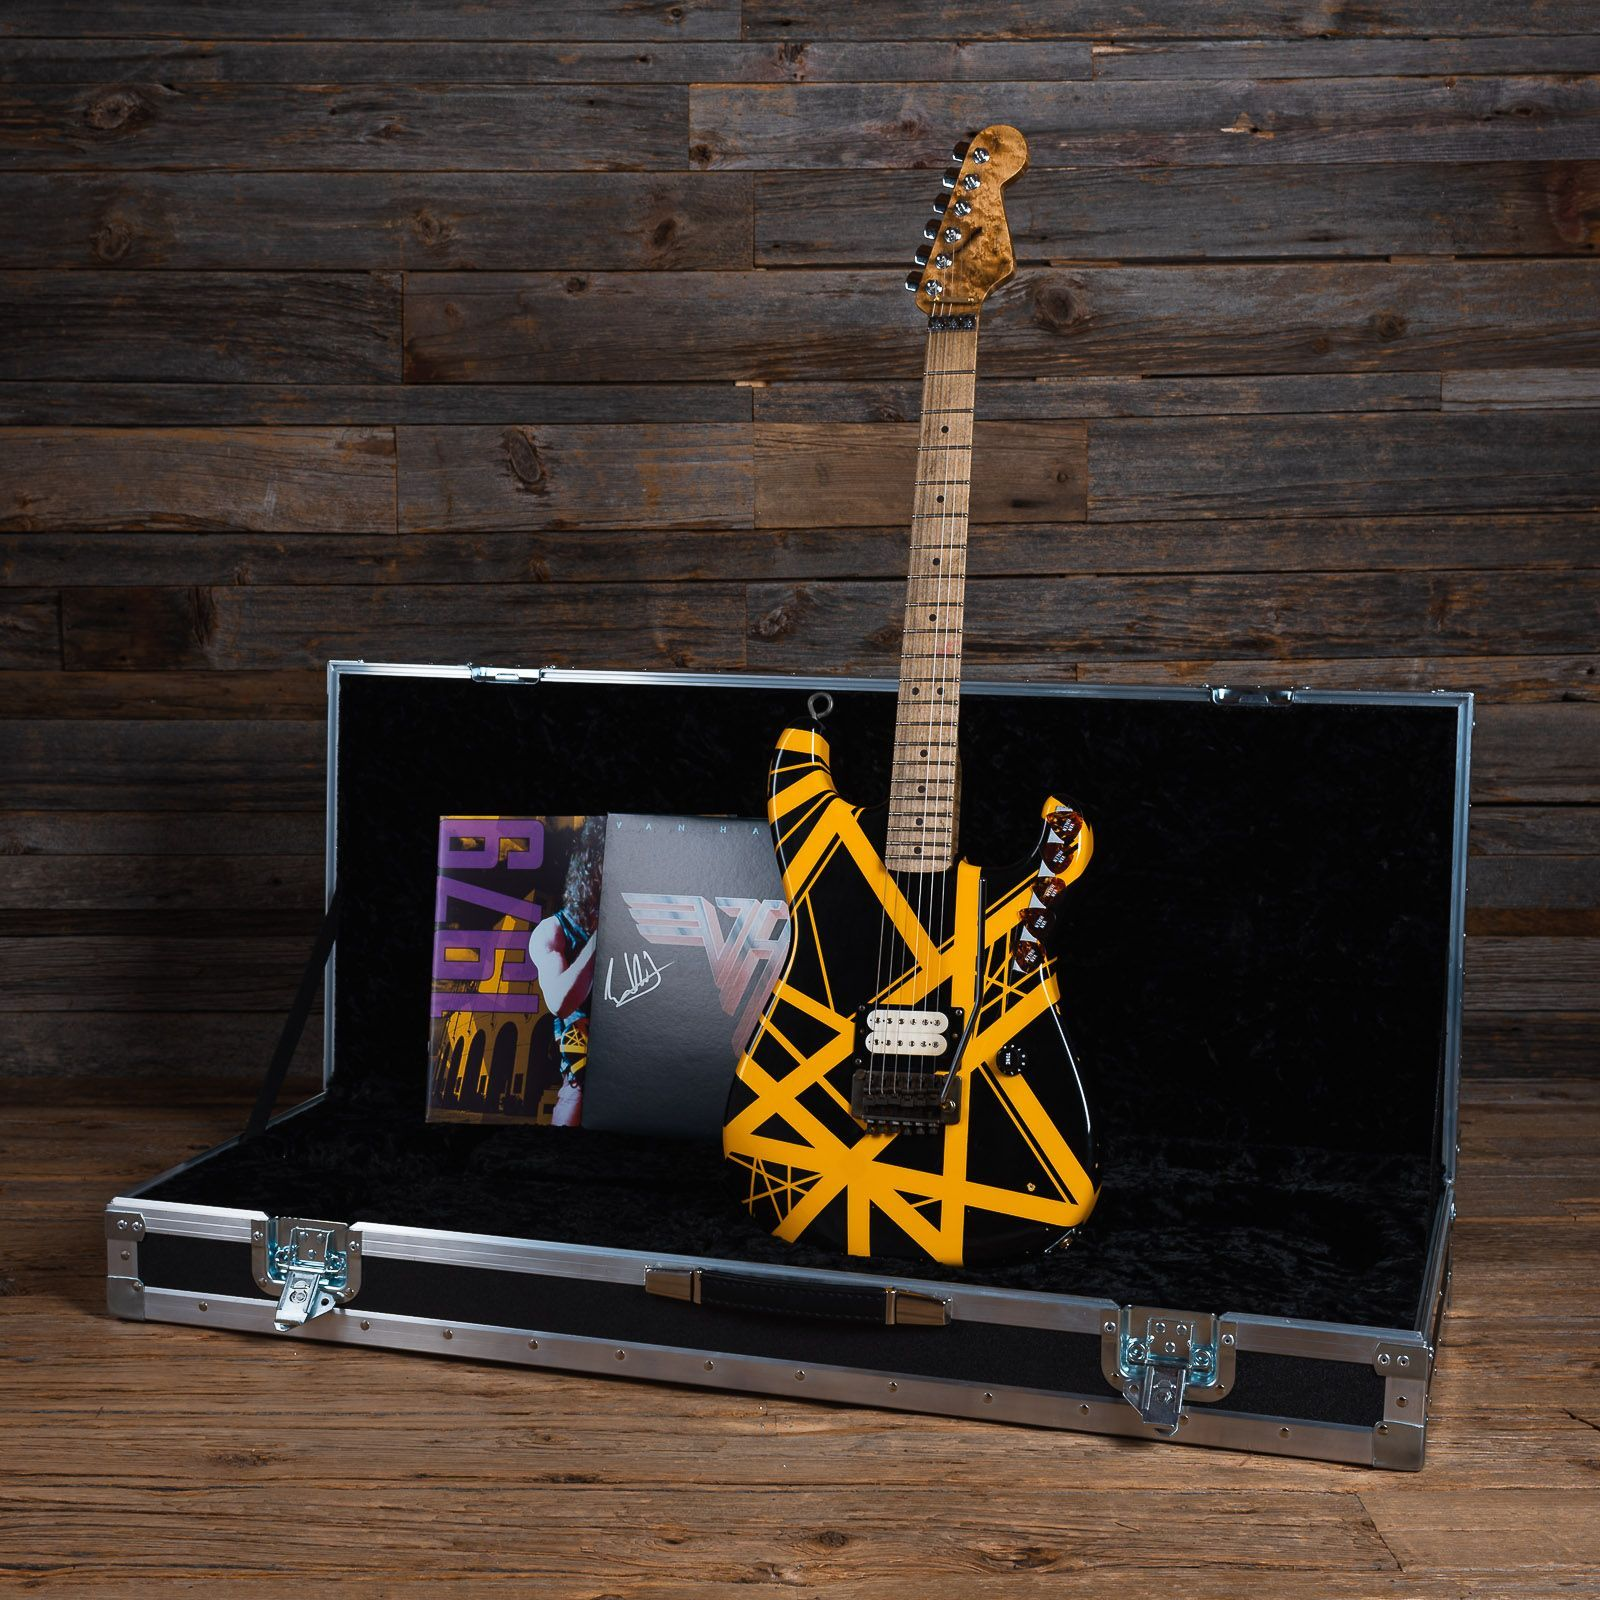 We Can T Keep Our Eyes Off This Evh Limited Edition Bumblebee Tribute Relic Signed By Eddie Himself This One Of A Kind Gui Tribute Bumble Bee Eddie Van Halen